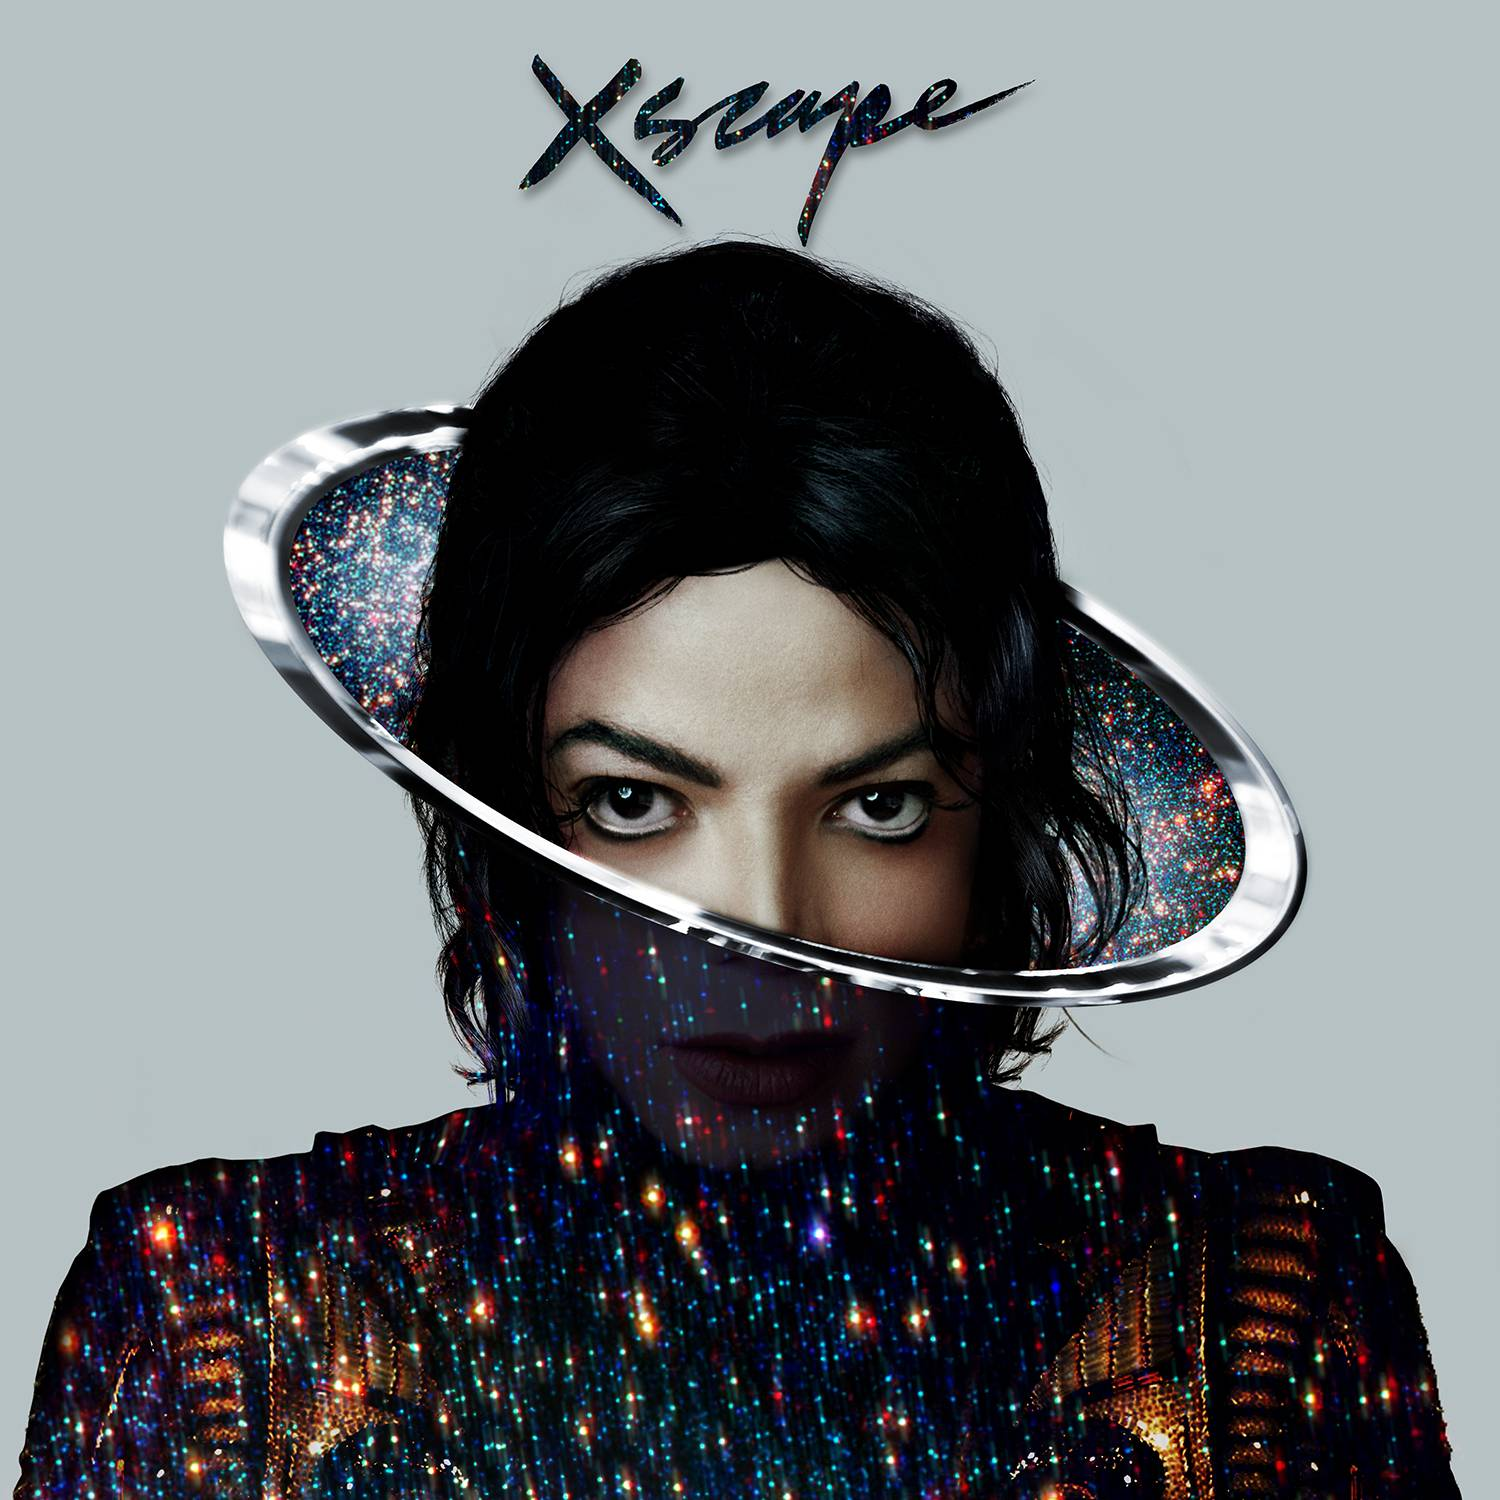 """Xscape"" is the second album released under Michael Jackson's moniker since his 2009 passing."